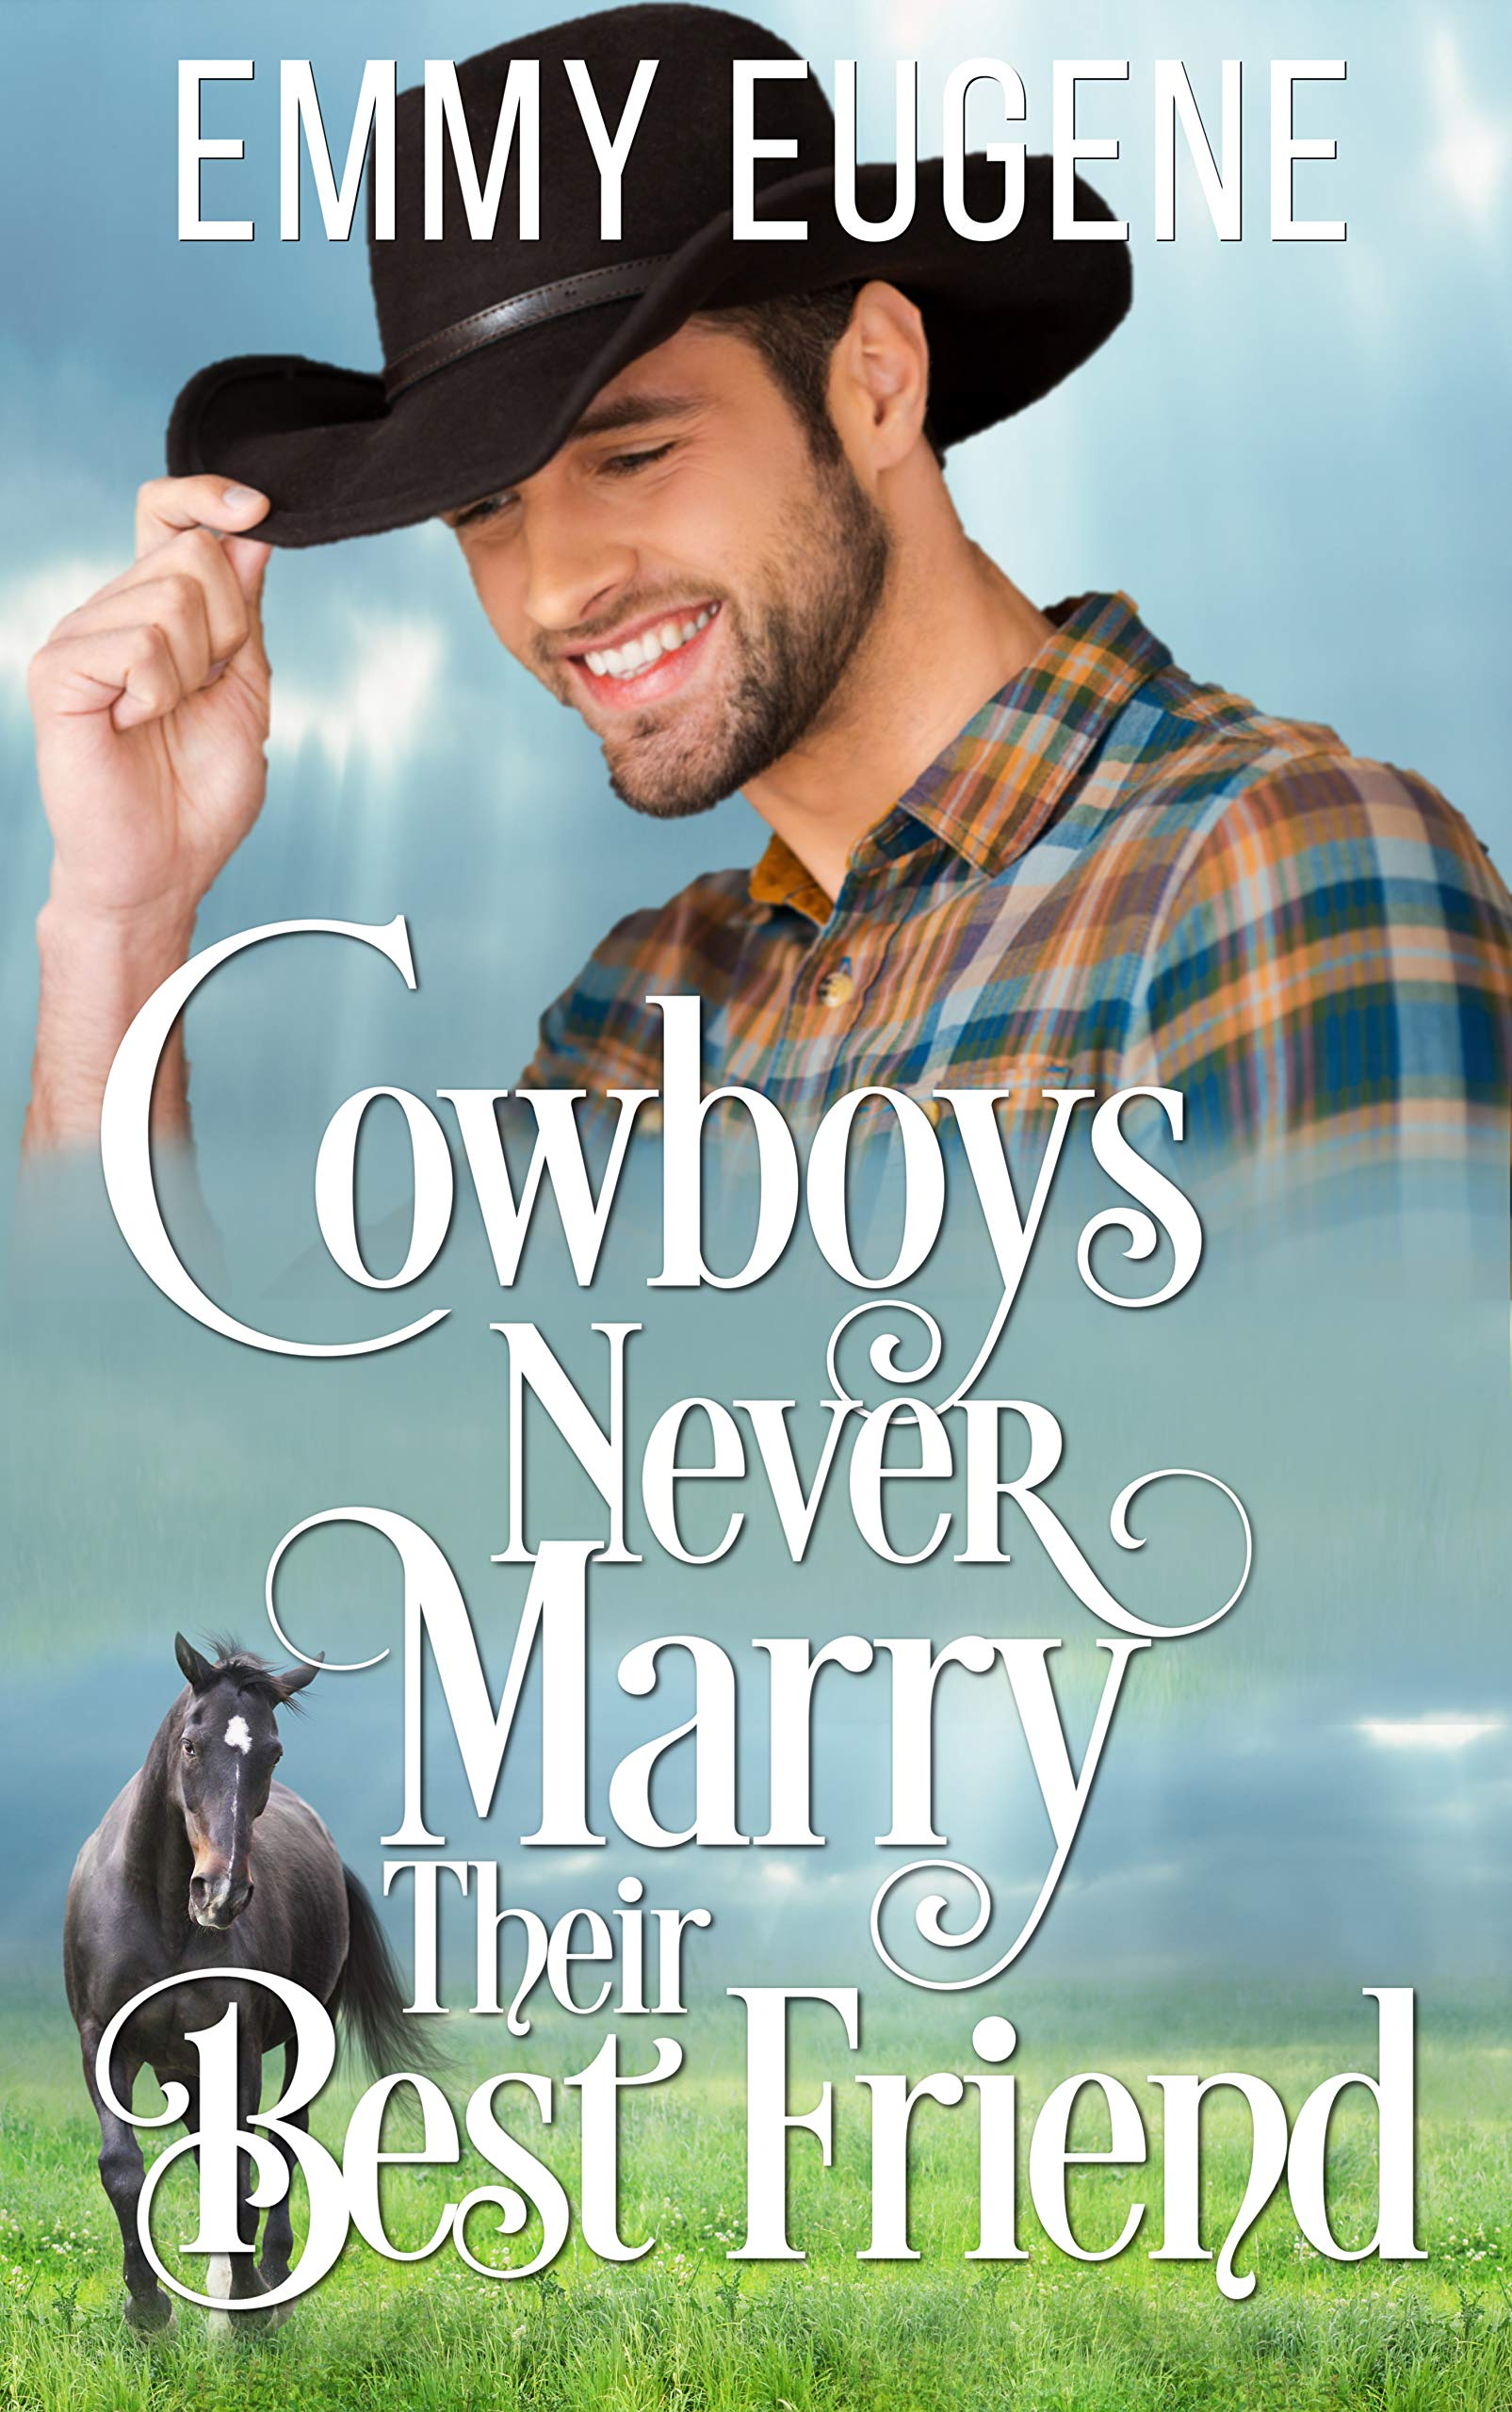 Cowboys Never Marry Their Best Friend  A Johnson Brothers Novel  Chestnut Ranch Cowboy Billionaire Romance Book 1   English Edition